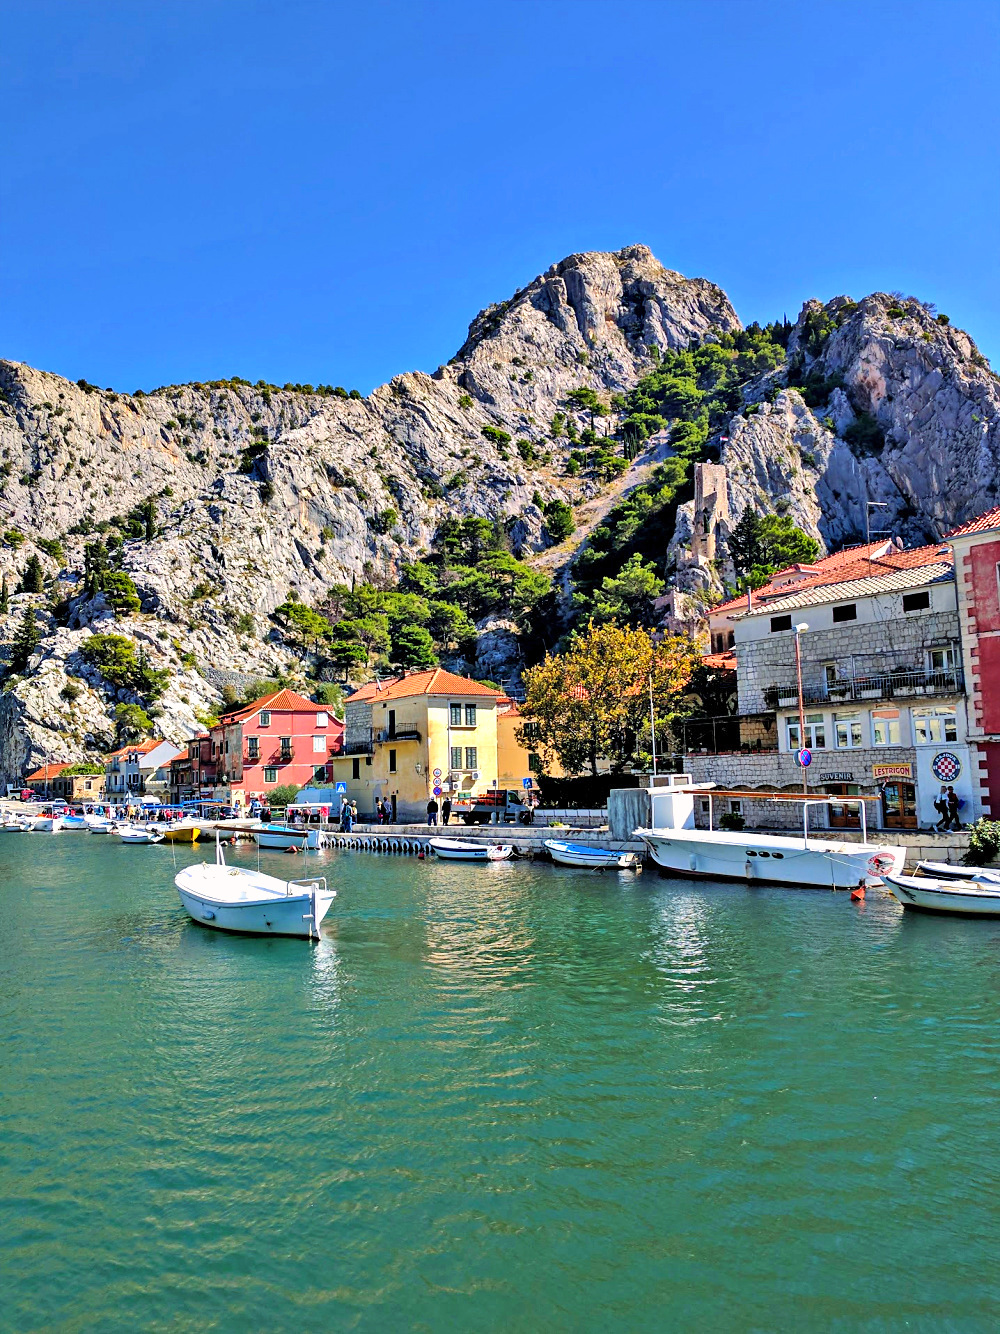 Road trip Croatia. Omis delivers on beauty and activities.